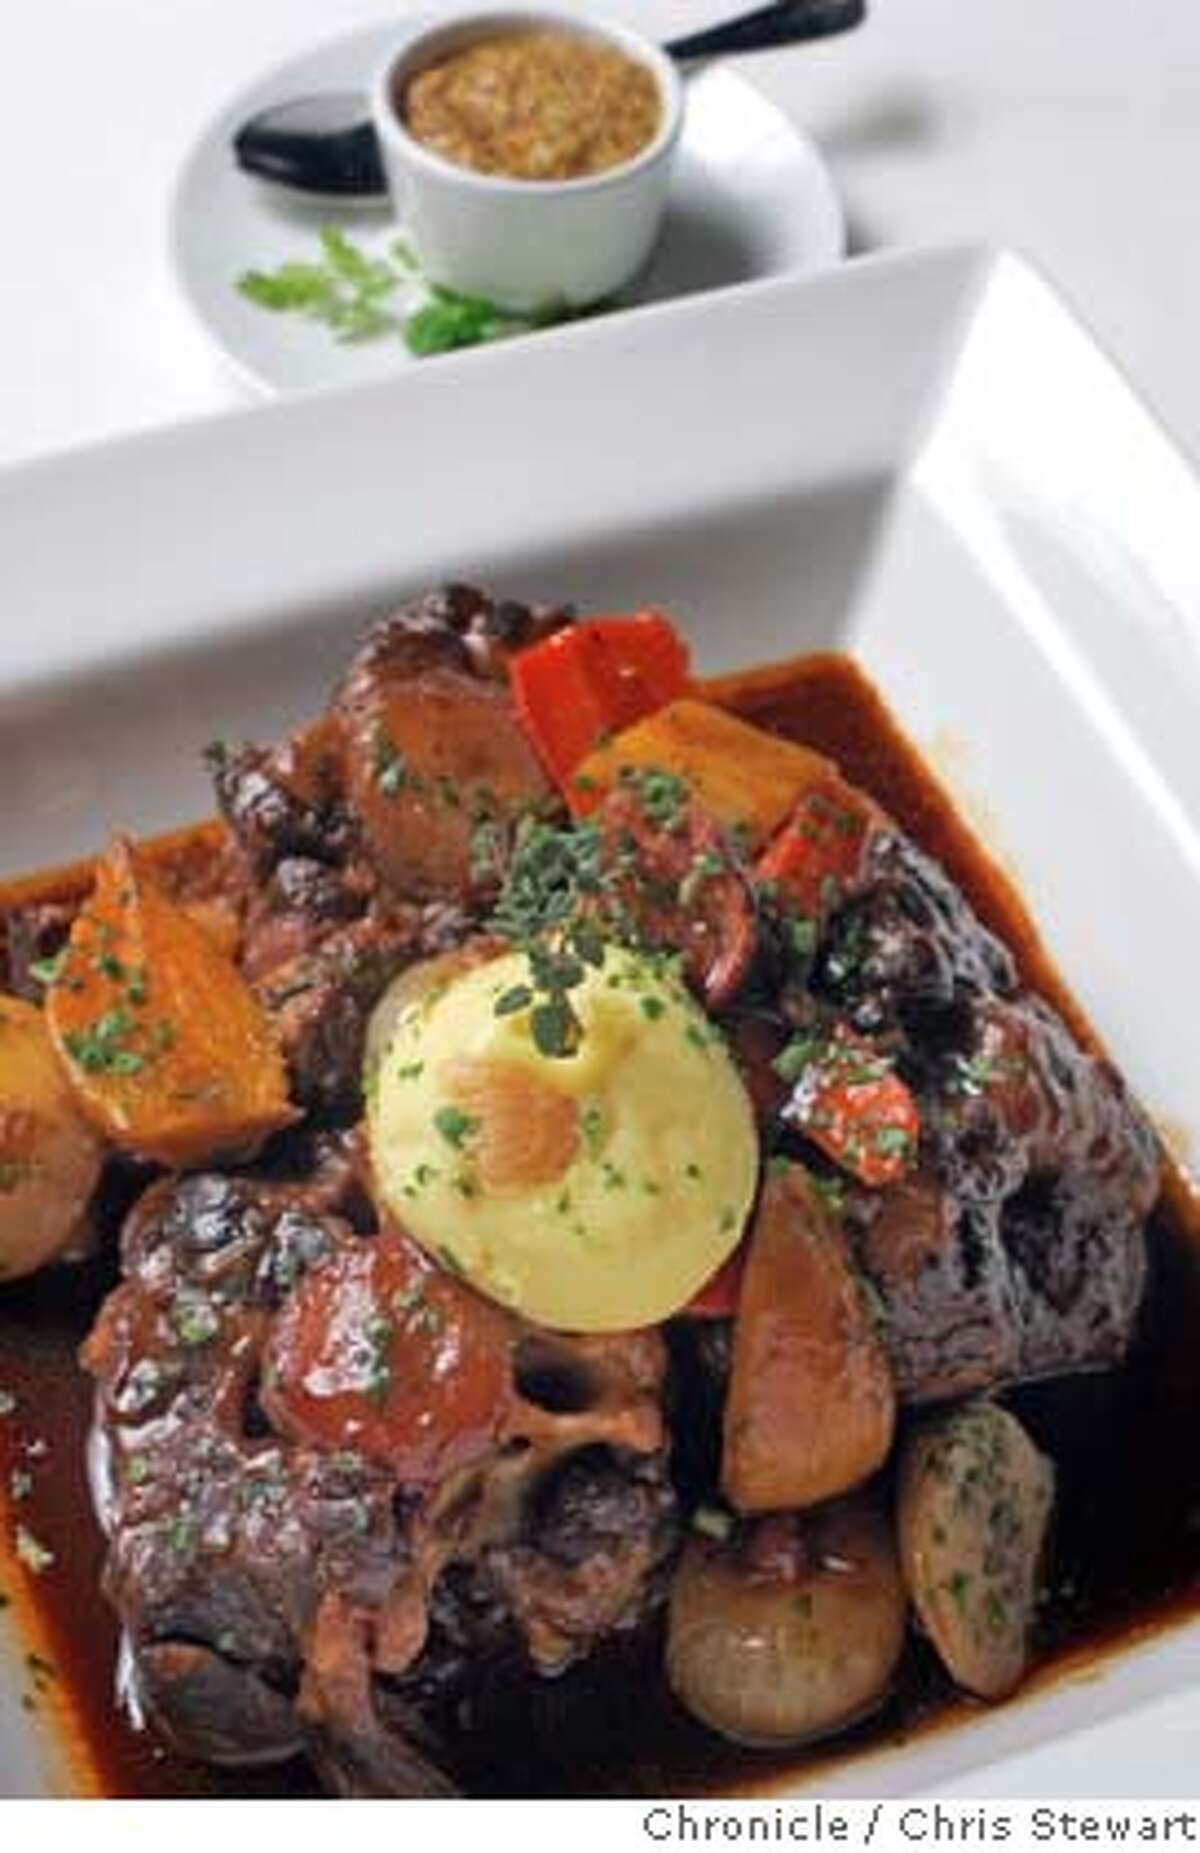 Event on 2/8/05 in San Francisco. Jack Falstaff, 598 2nd Street (at Brannan), SF, is the new hangout of SF Mayor Gavin Newsom and many other politicos. It was designed by Stanley Gatti. This is the Oxtail dish. Chris Stewart / The Chronicle